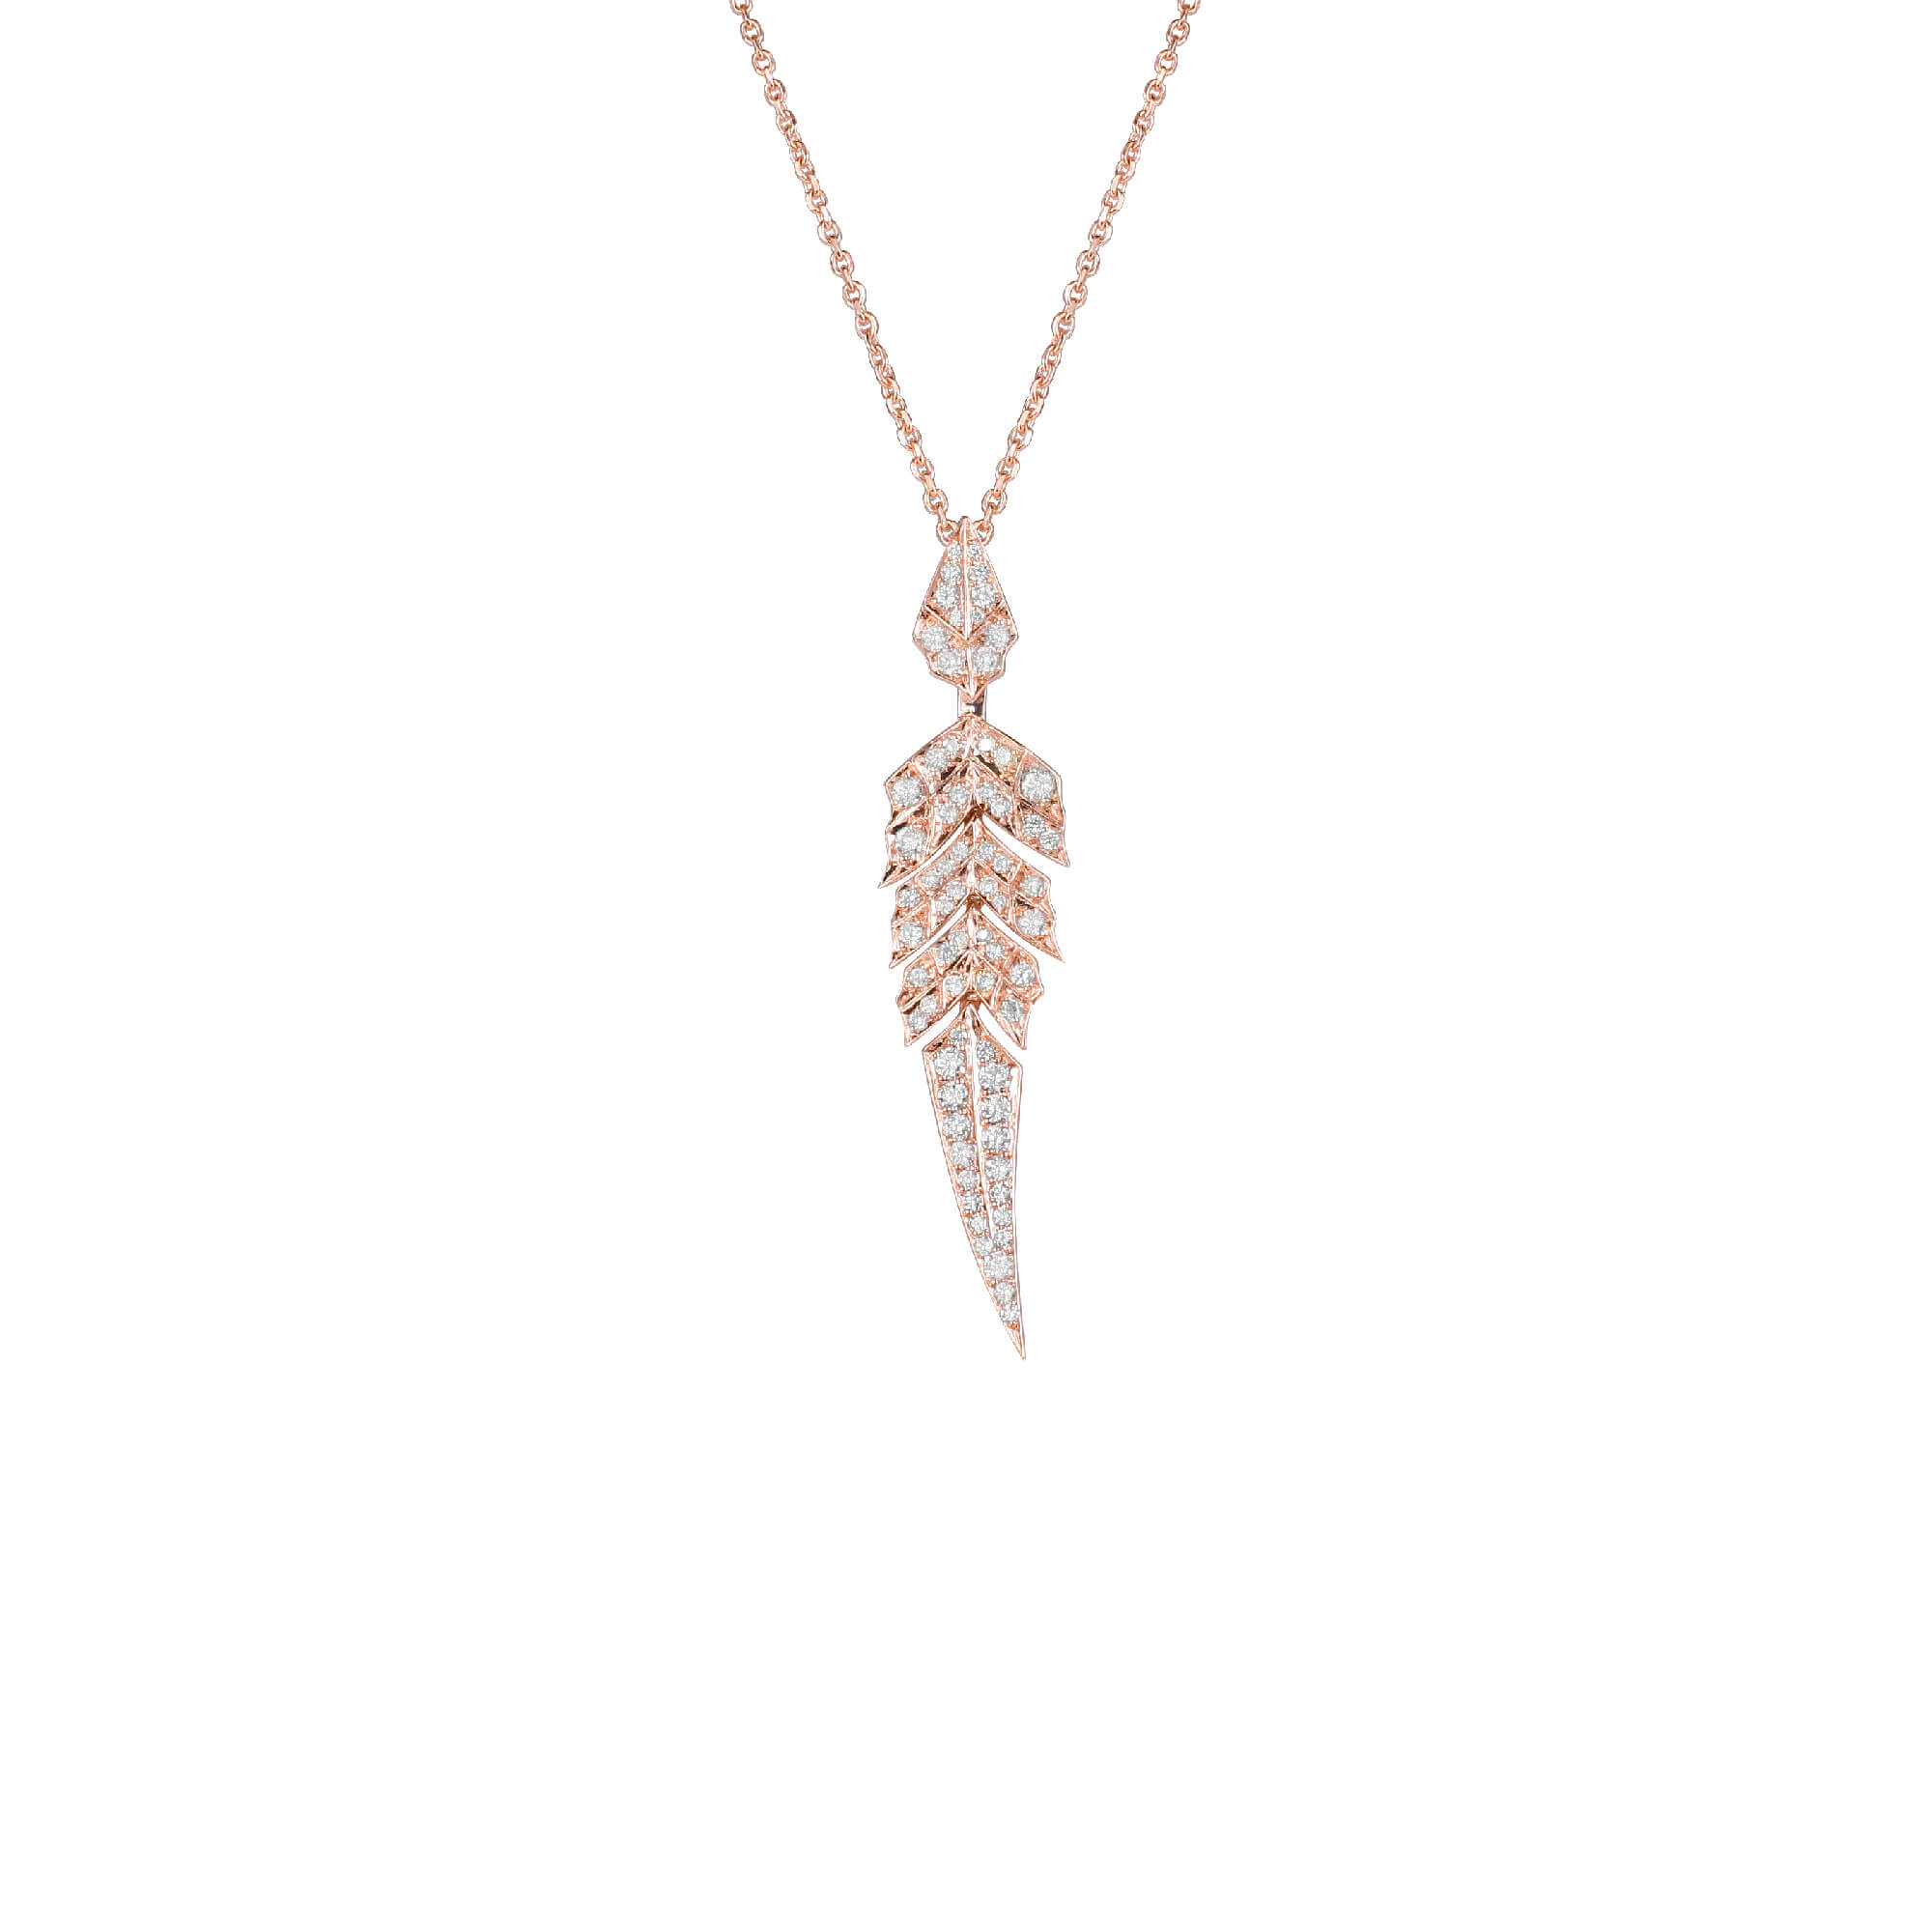 Rose Gold Pavé Short Pendant With White Diamonds Set In Rose Gold | Magnipheasant